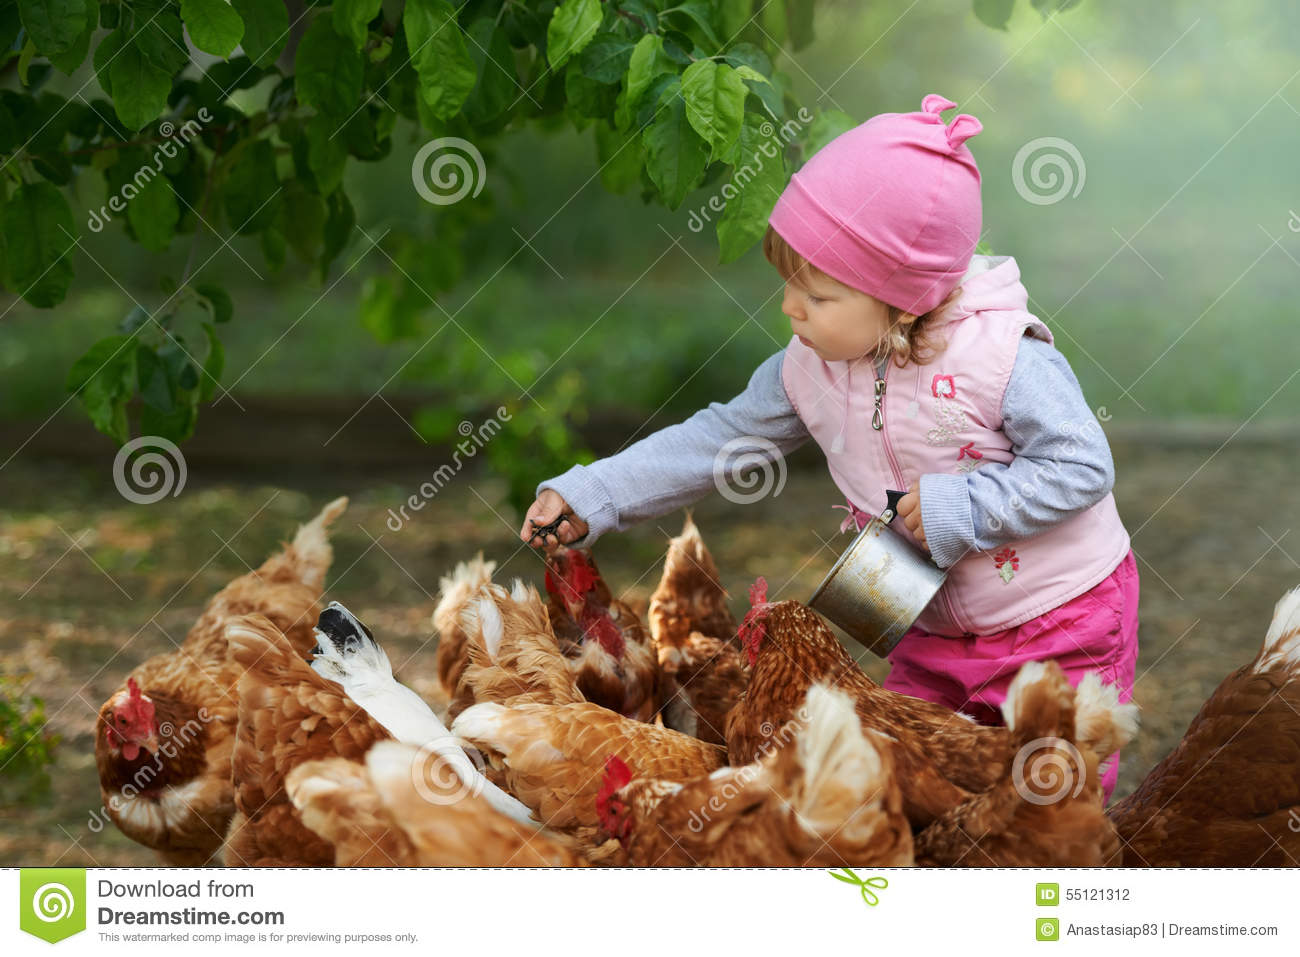 Little child enjoying feeding chicken